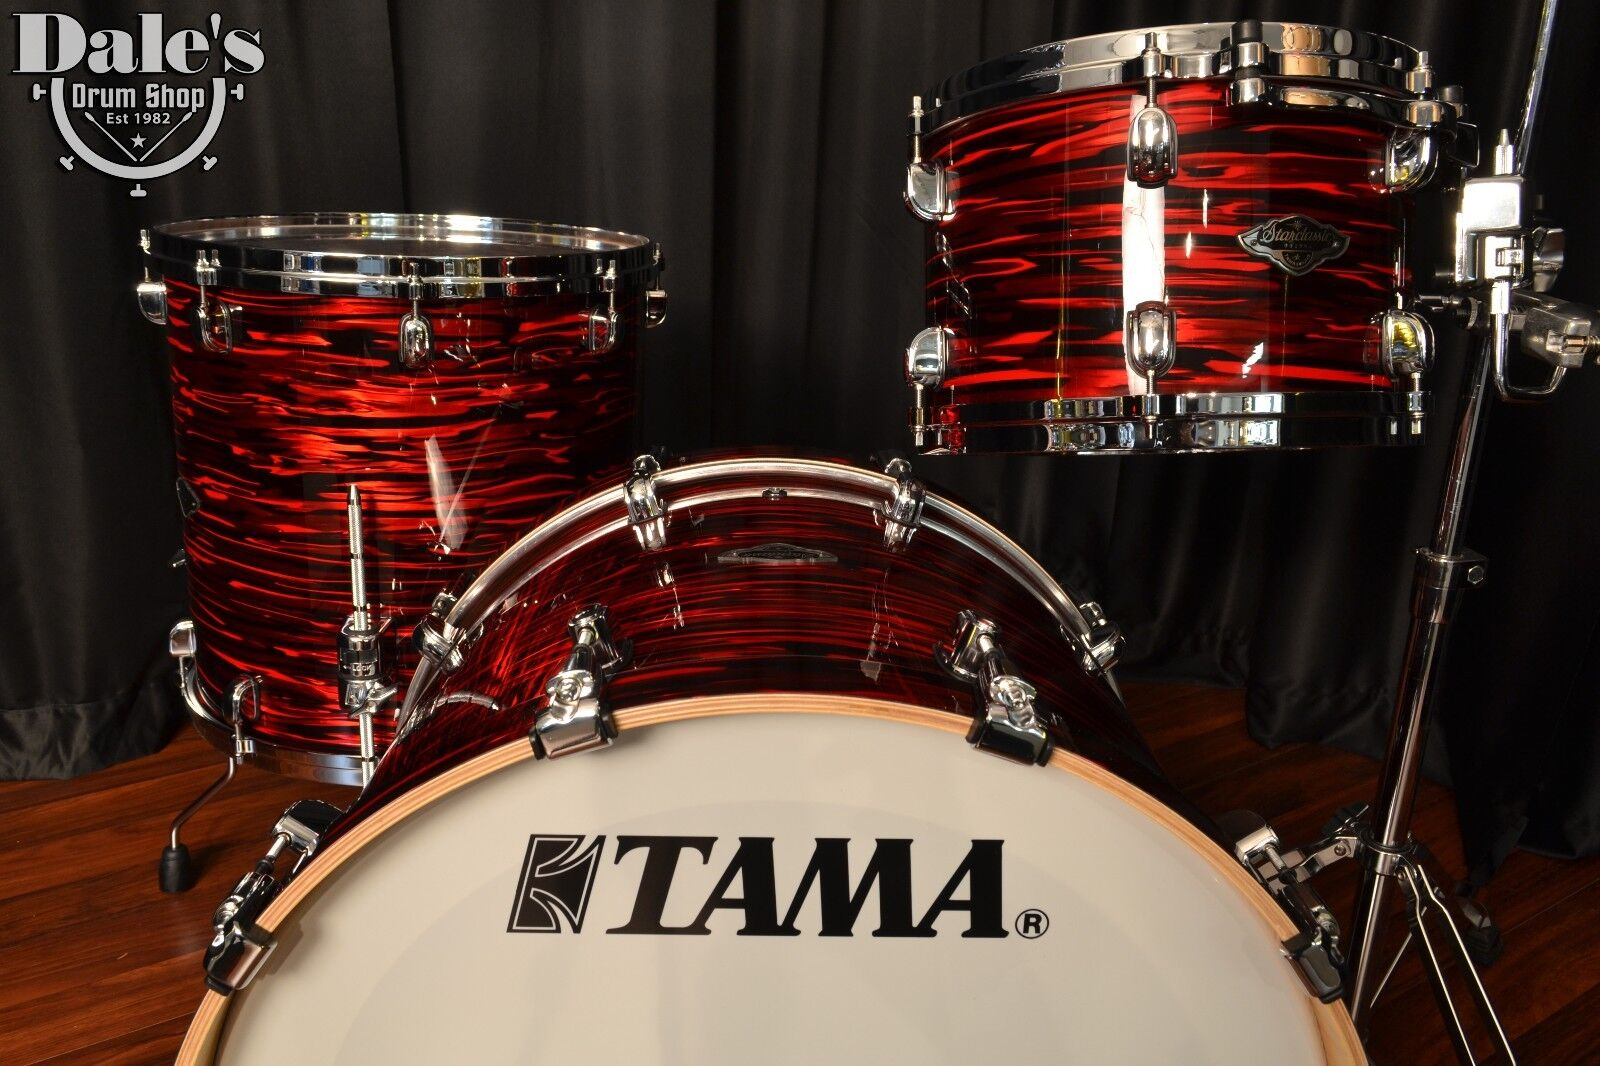 Tama Drums Sets 3pc Starclassic Performer B B Red Oyster 8x12 16x16